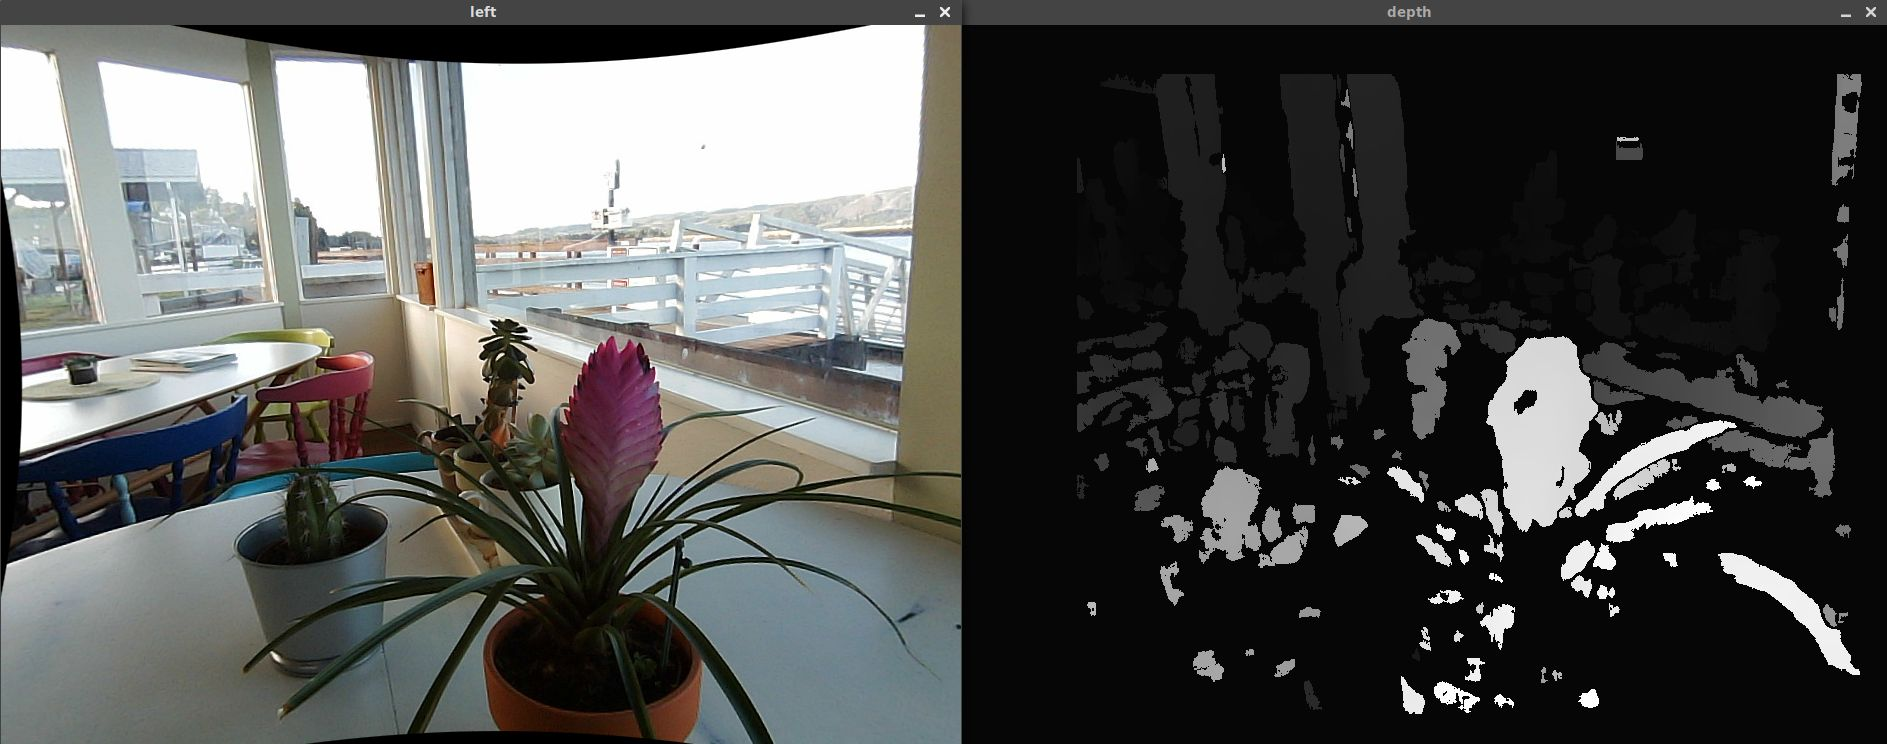 Potted plants and the corresponding depth map